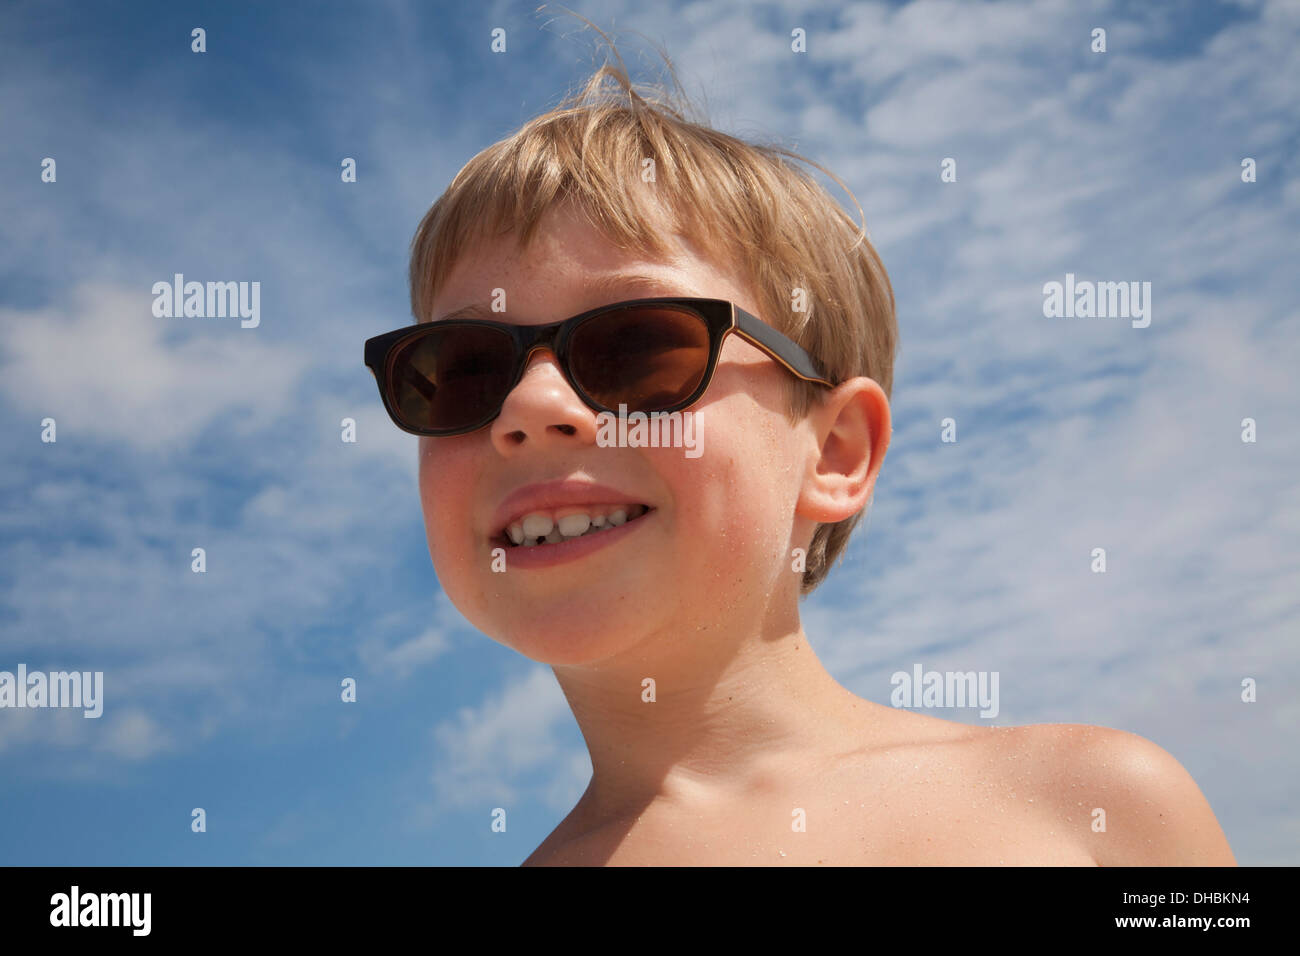 A young boy wearing sunglasses. Smiling, Blue sky. Blonde hair. - Stock Image